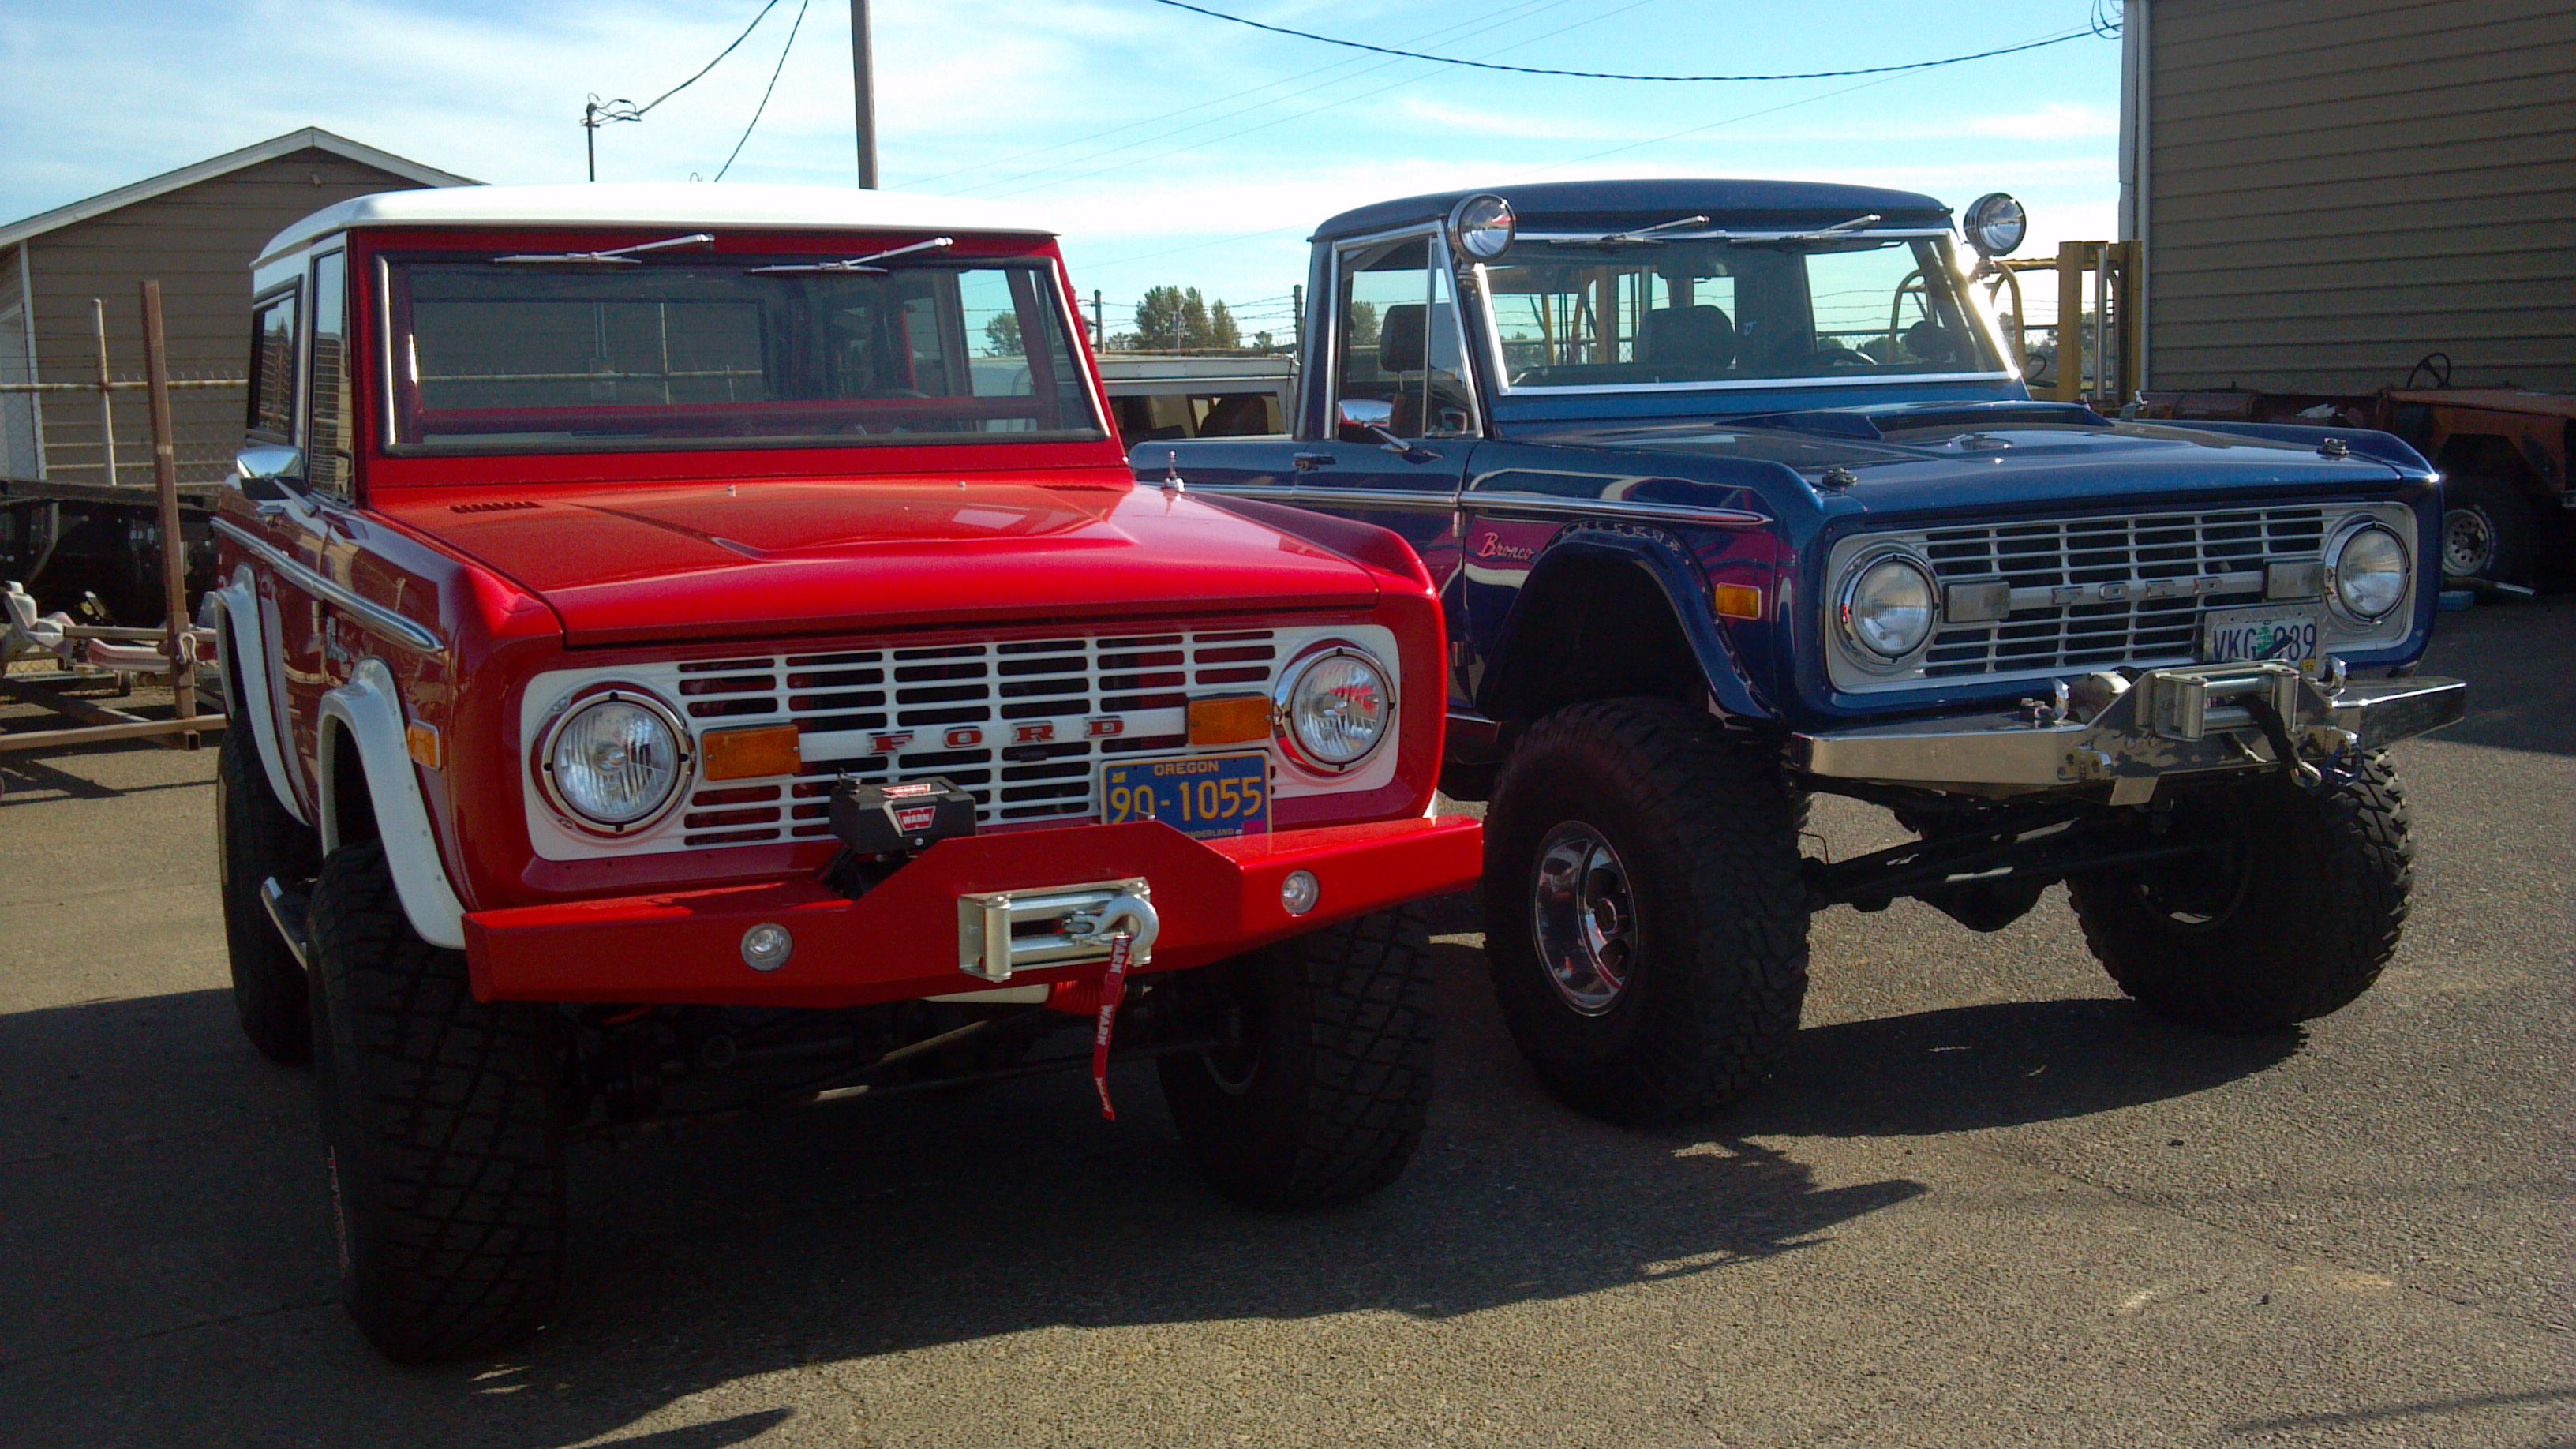 B&B Auto Repair - Red and Blue Early Ford Broncos